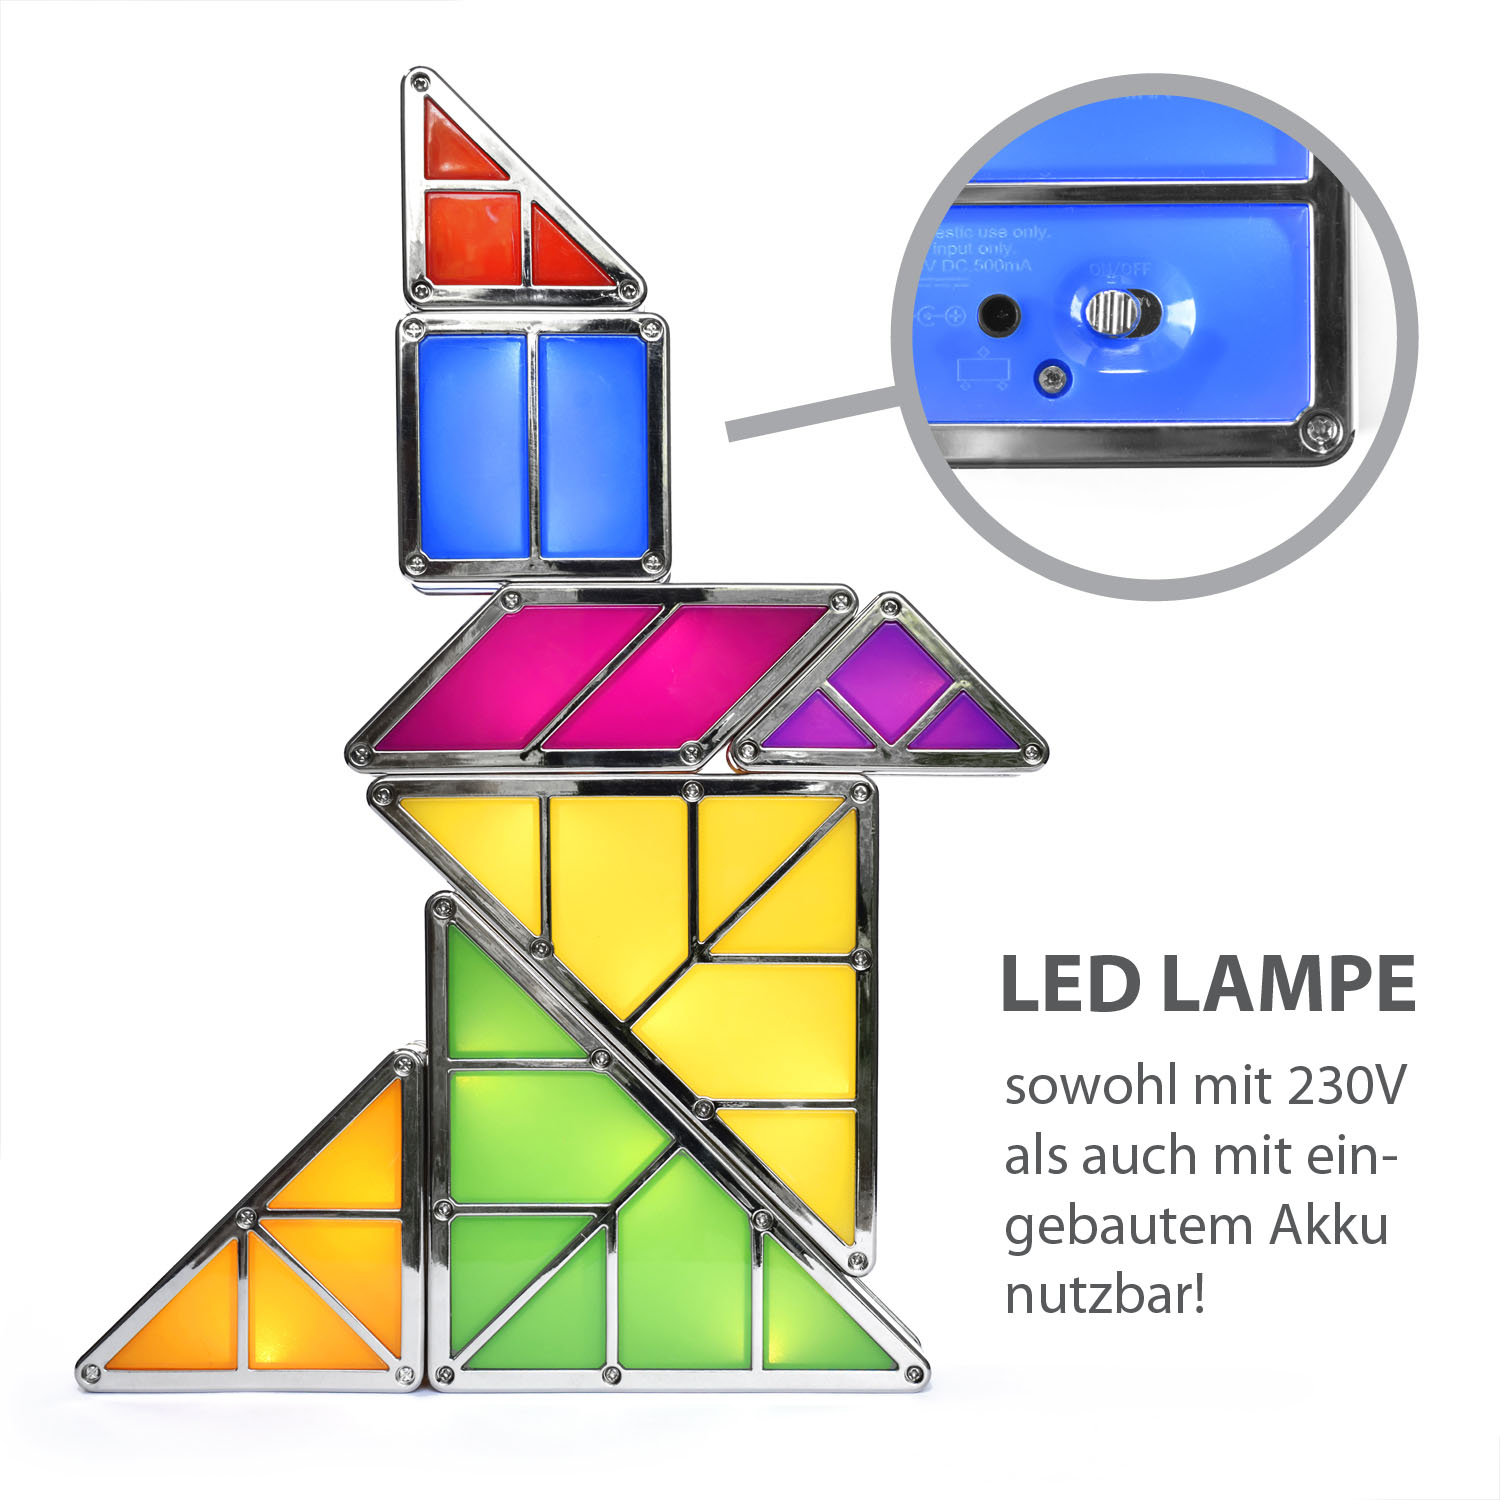 tangram licht led light mit bausteinen und akku. Black Bedroom Furniture Sets. Home Design Ideas